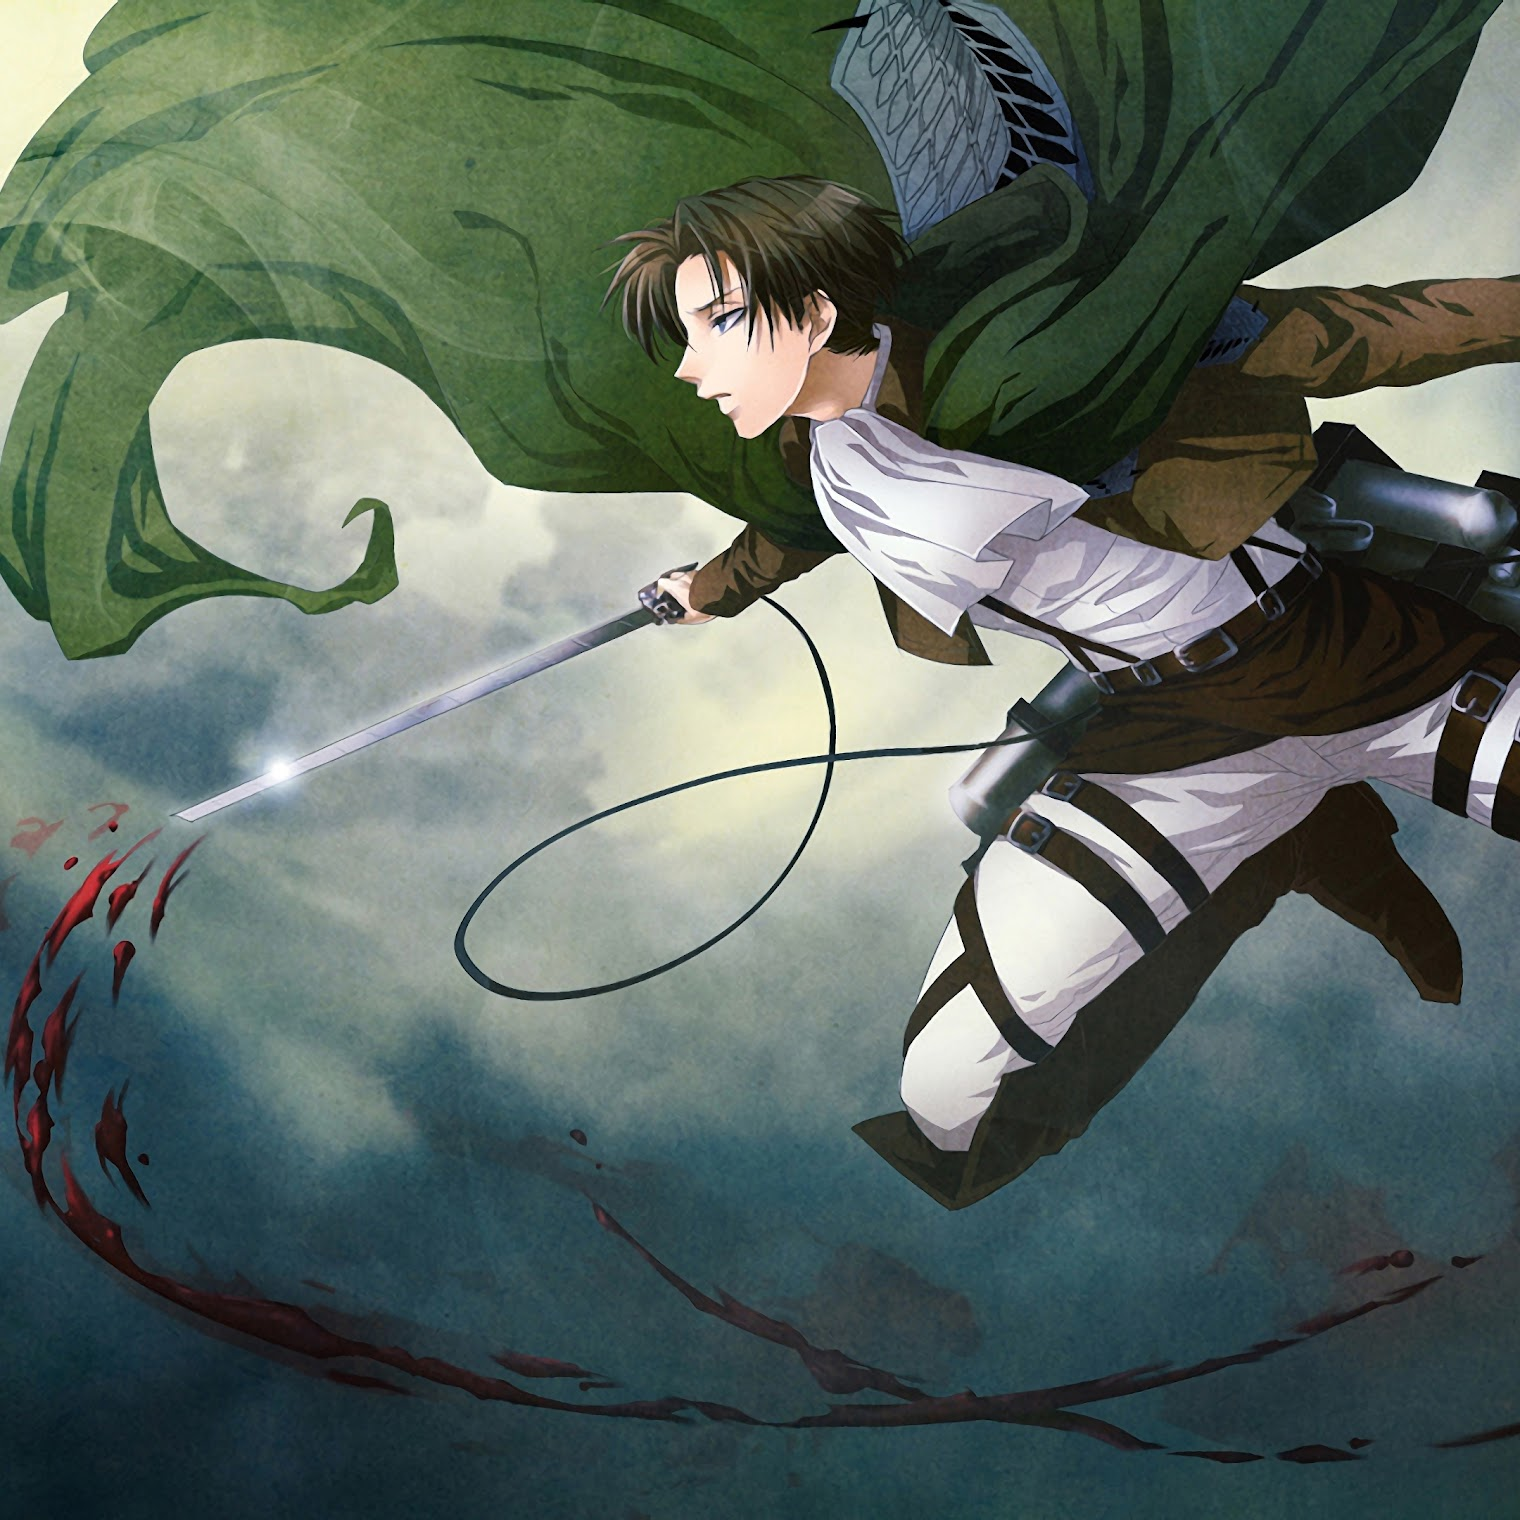 Check out this best collection of attack on titan iphone wallpapers with tons of high quality hd background for iphone 11, 11 pro max, x,. Levi, Attack on Titan, 4K, #59 Wallpaper